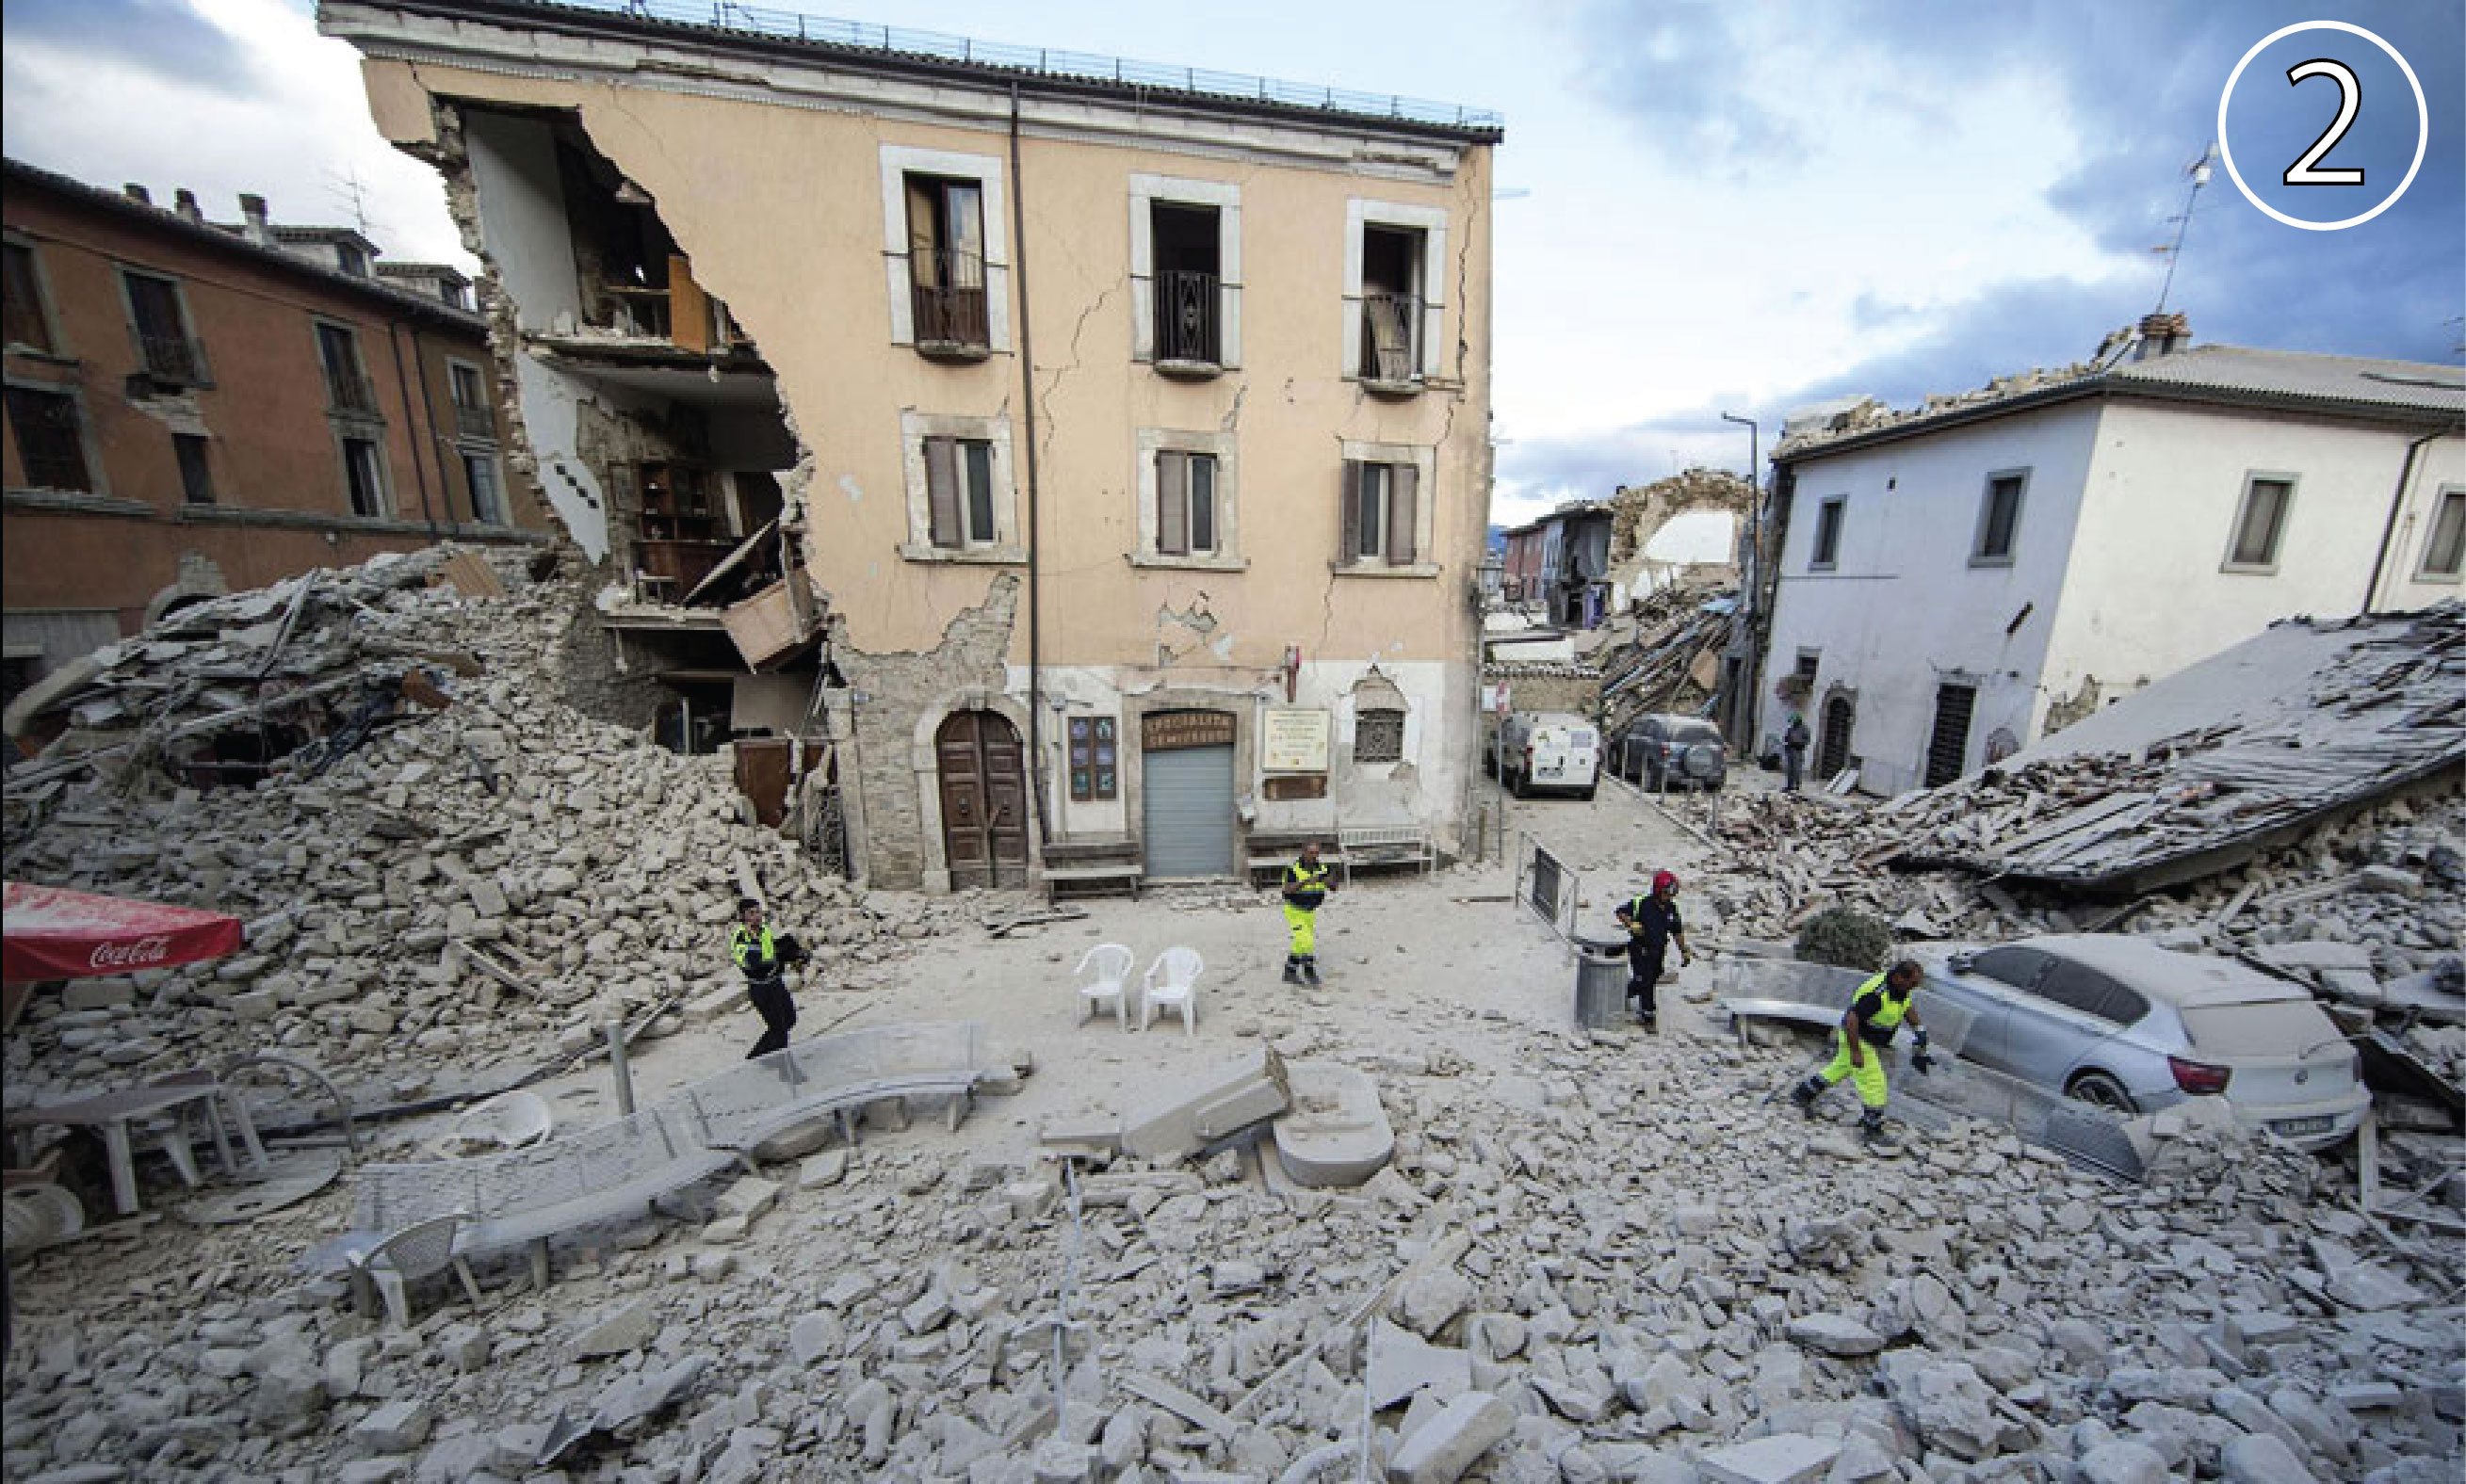 Damage from the Italy earthquake in Amatrice.